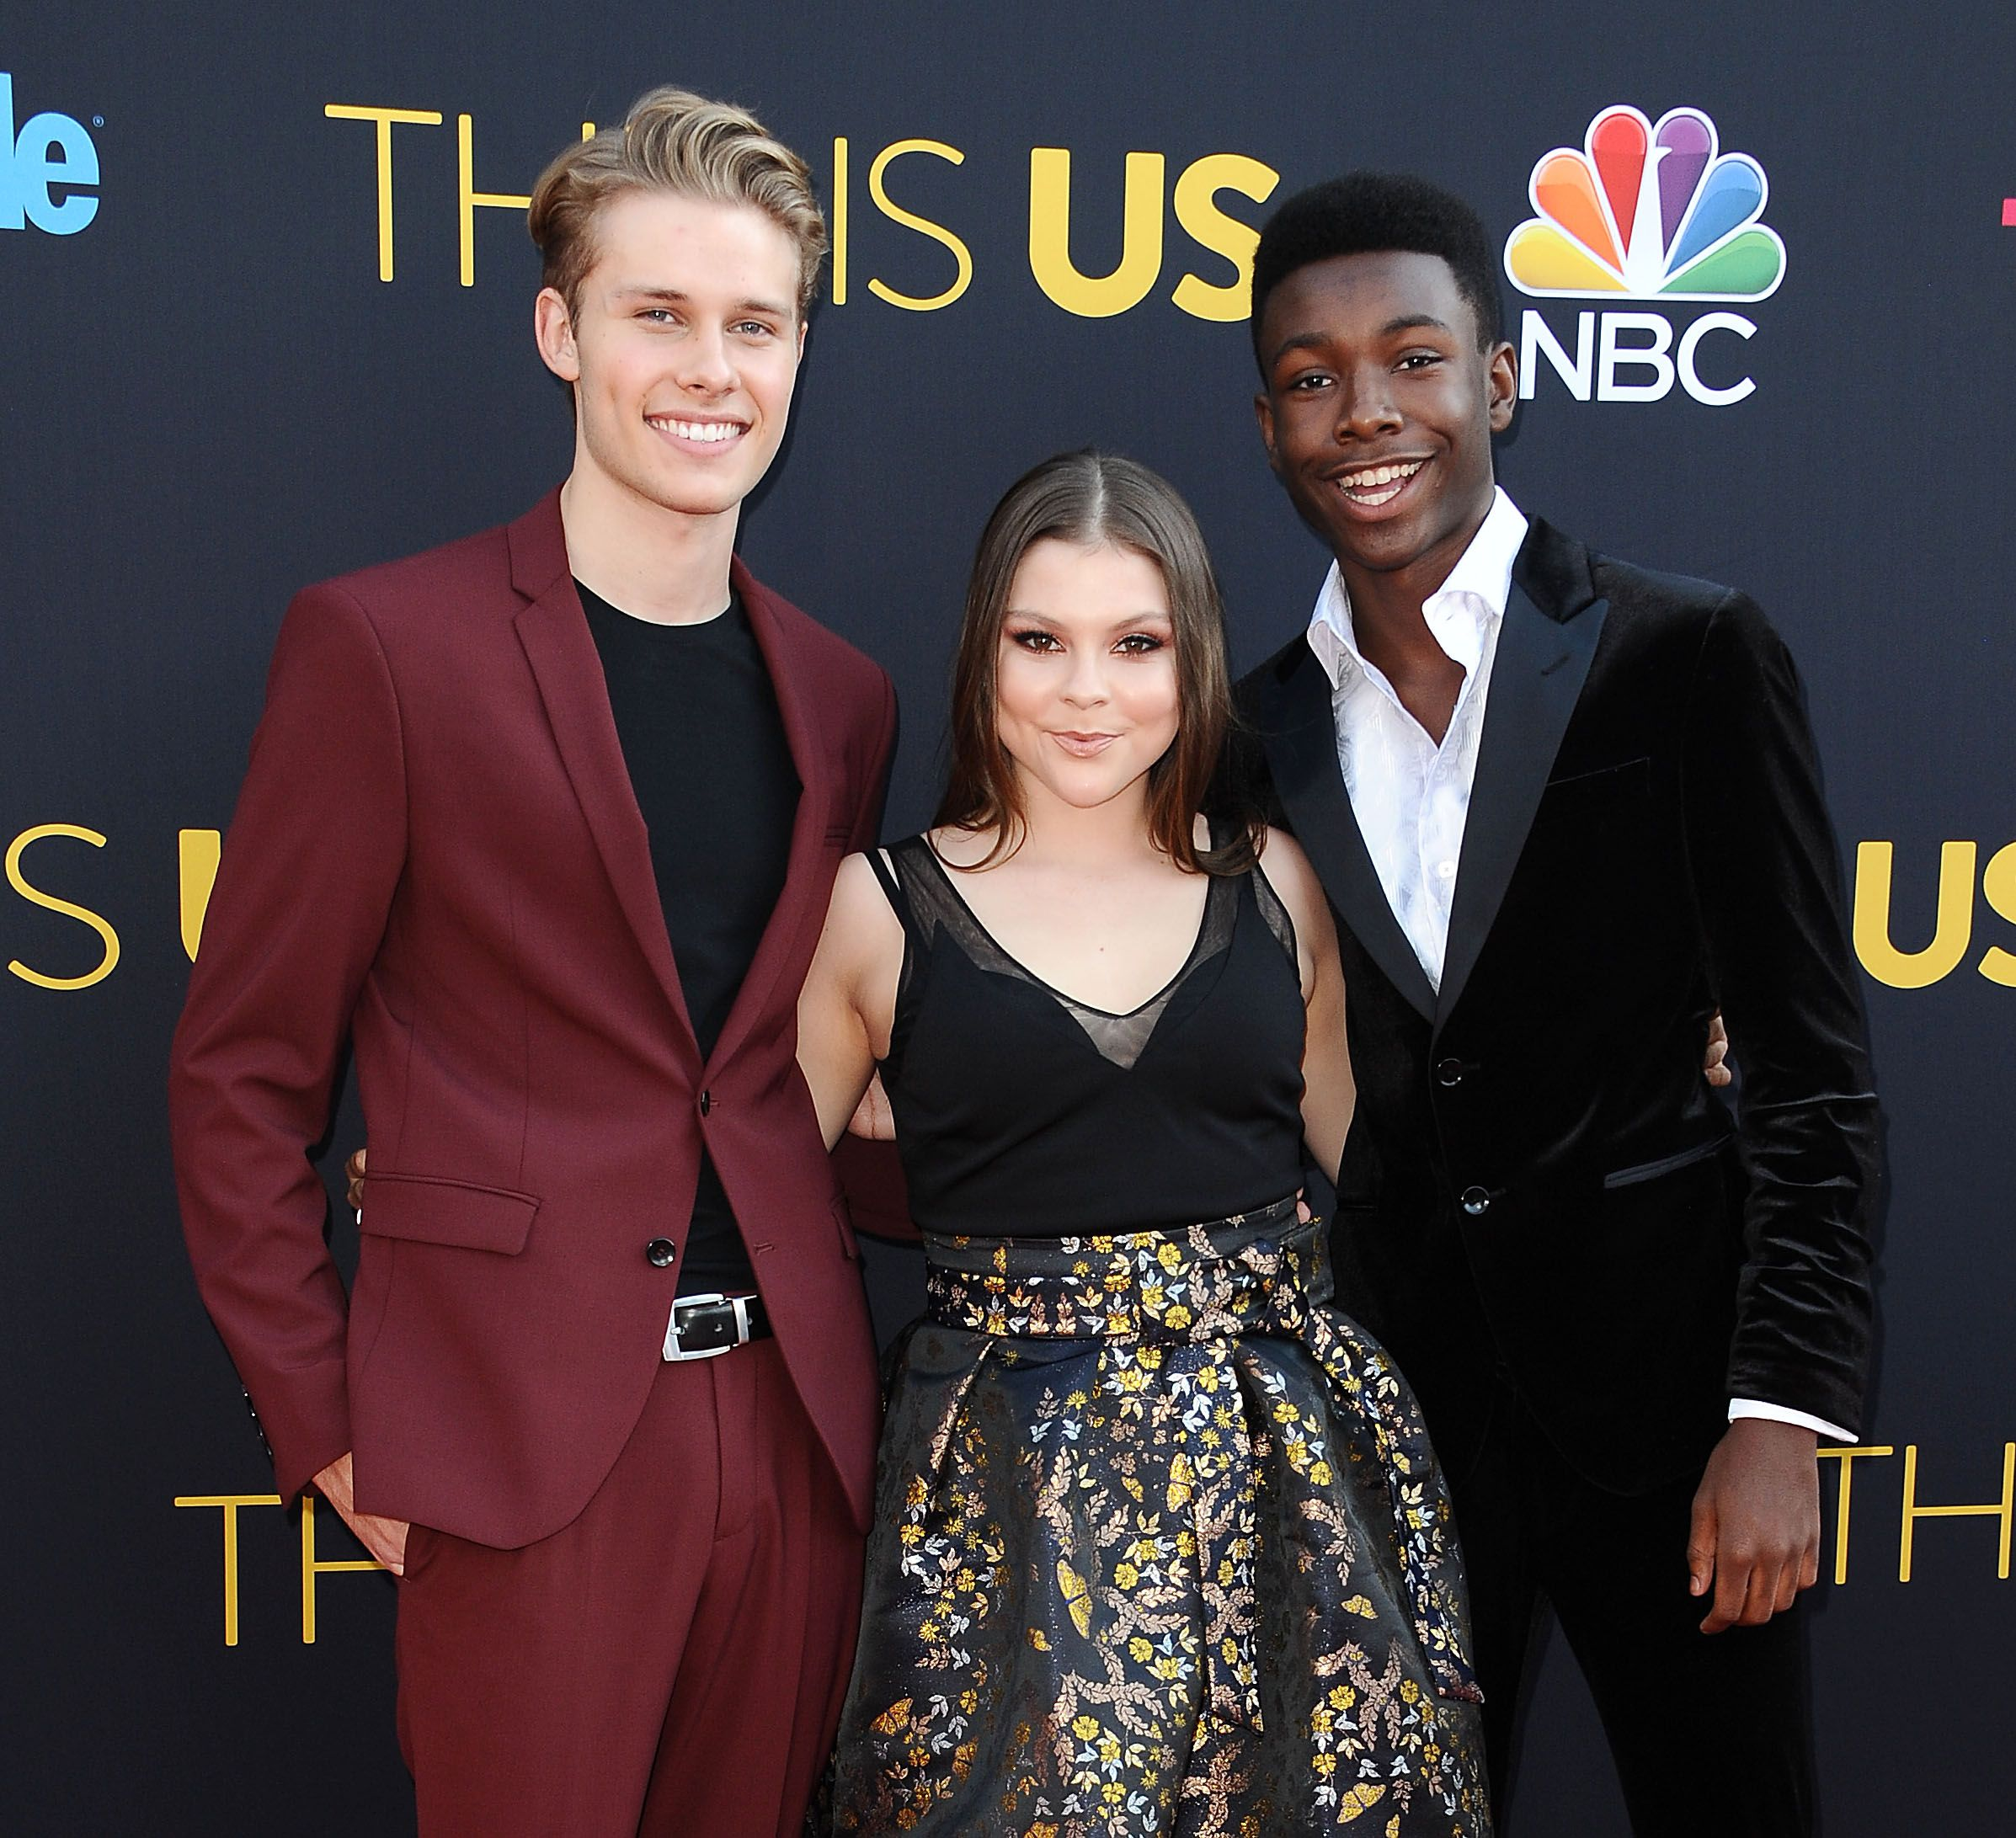 This Is Us Season 4 Cast Includes A Lot Of Brand New Characters For The Episodes Ahead